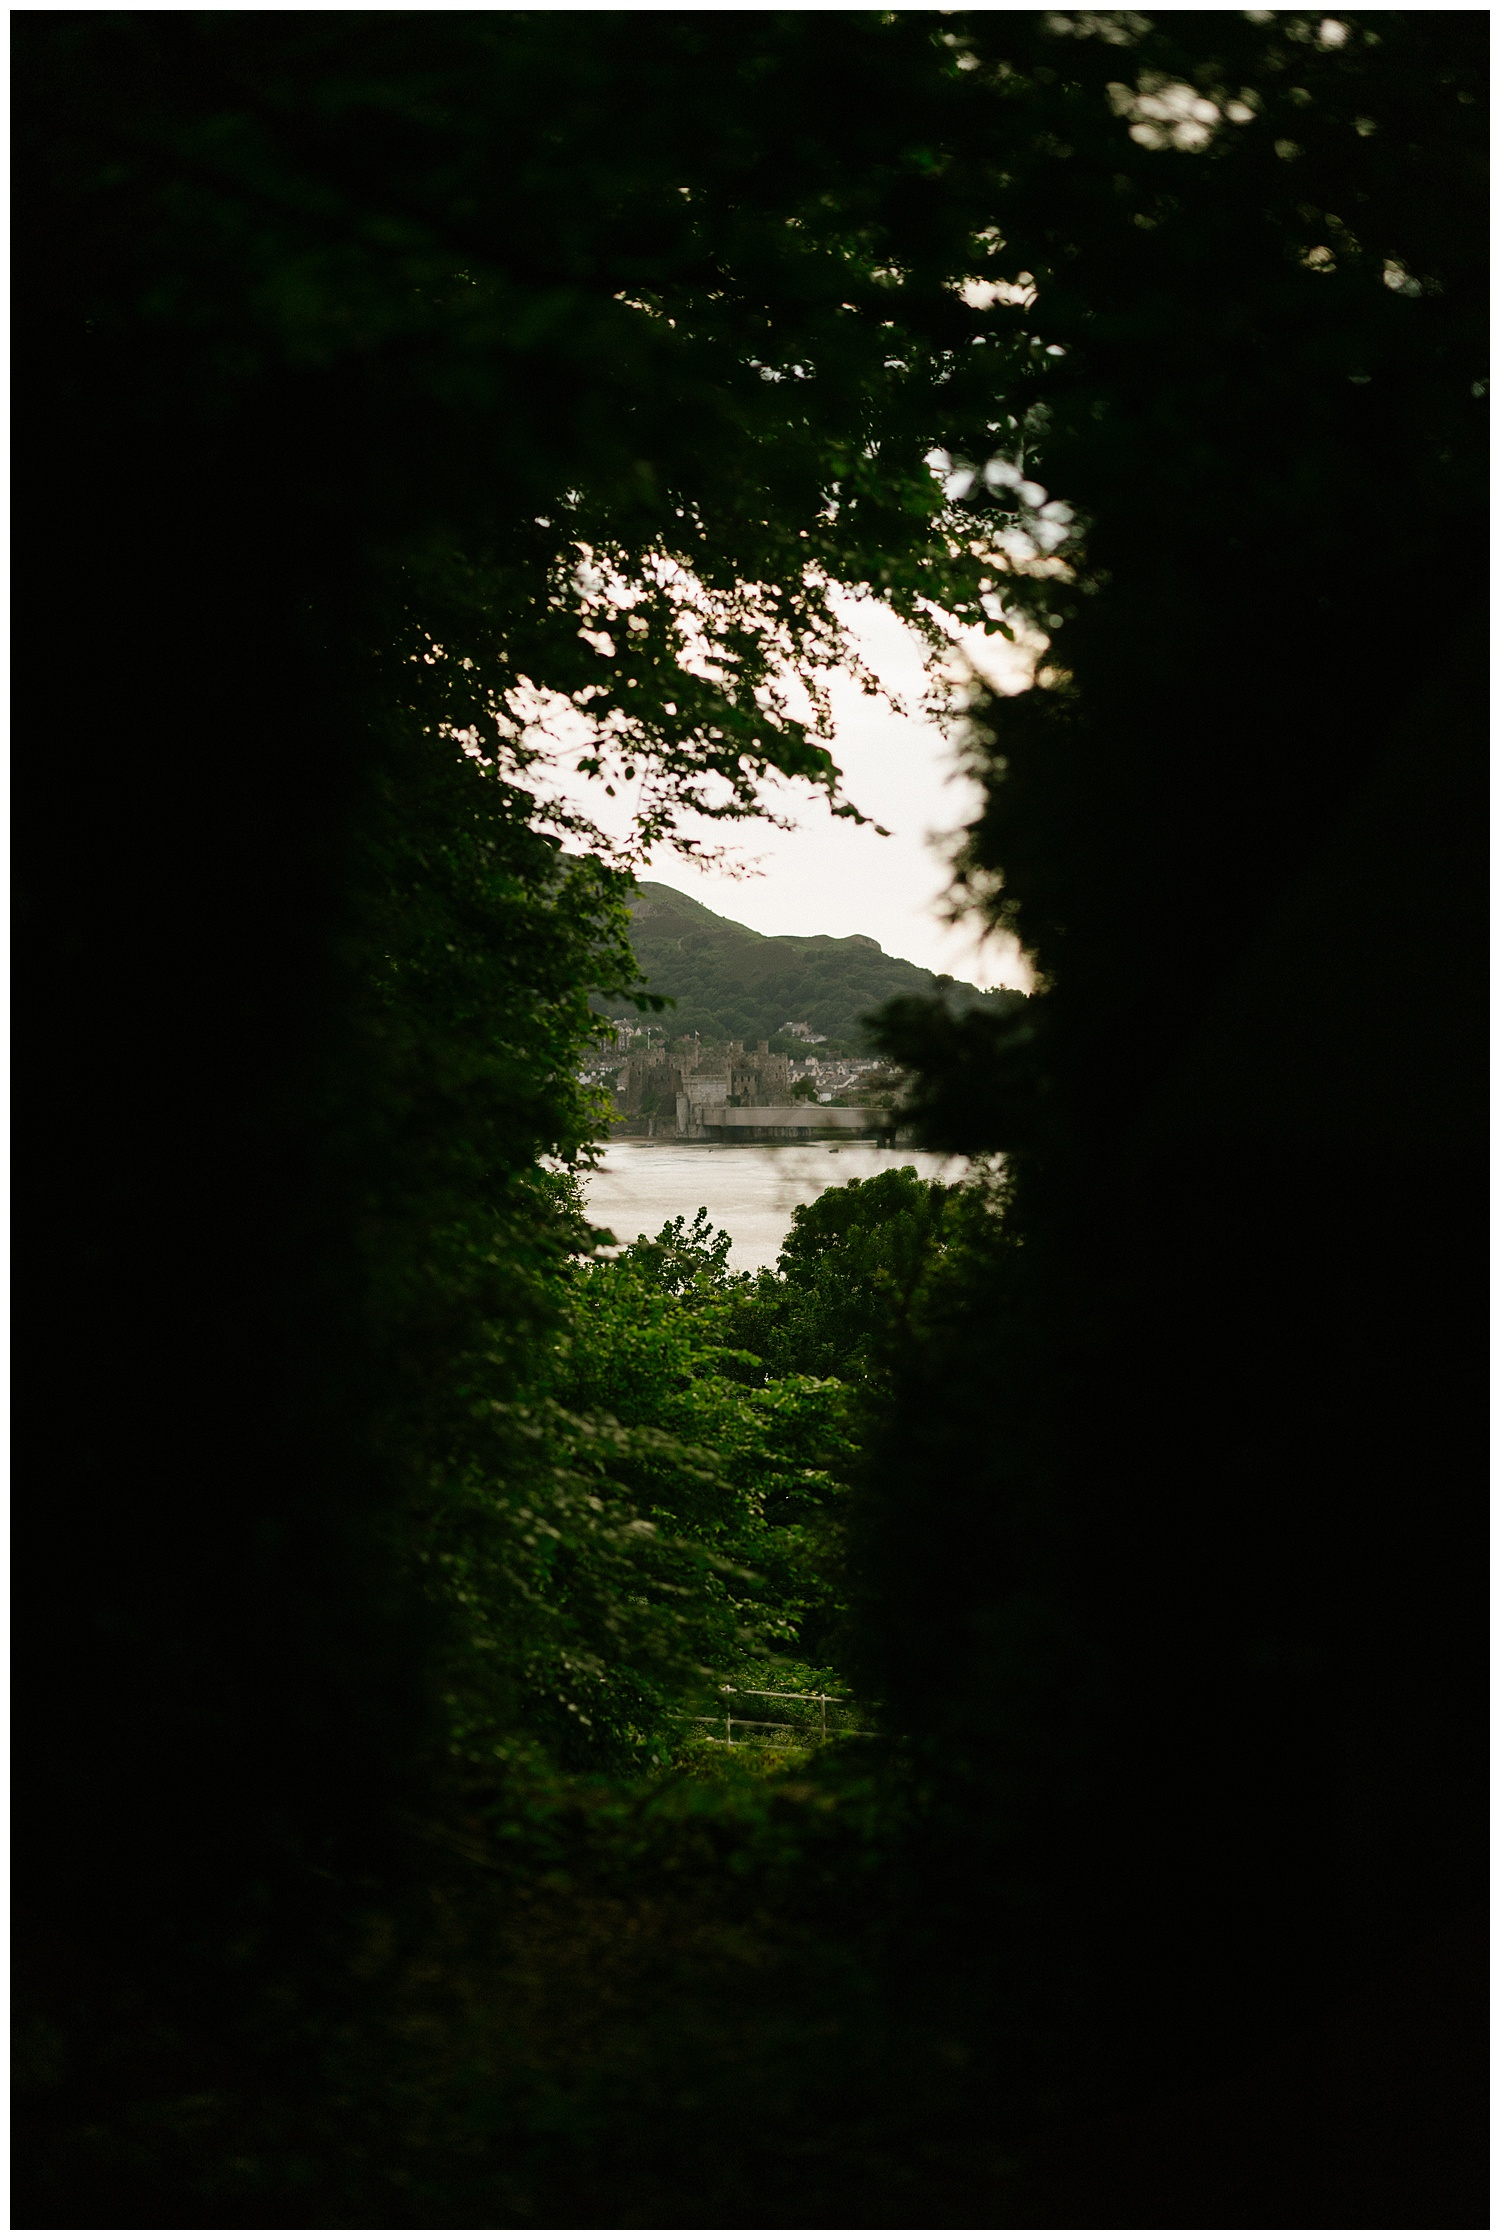 Glimpse of Conwy town through the dense trees